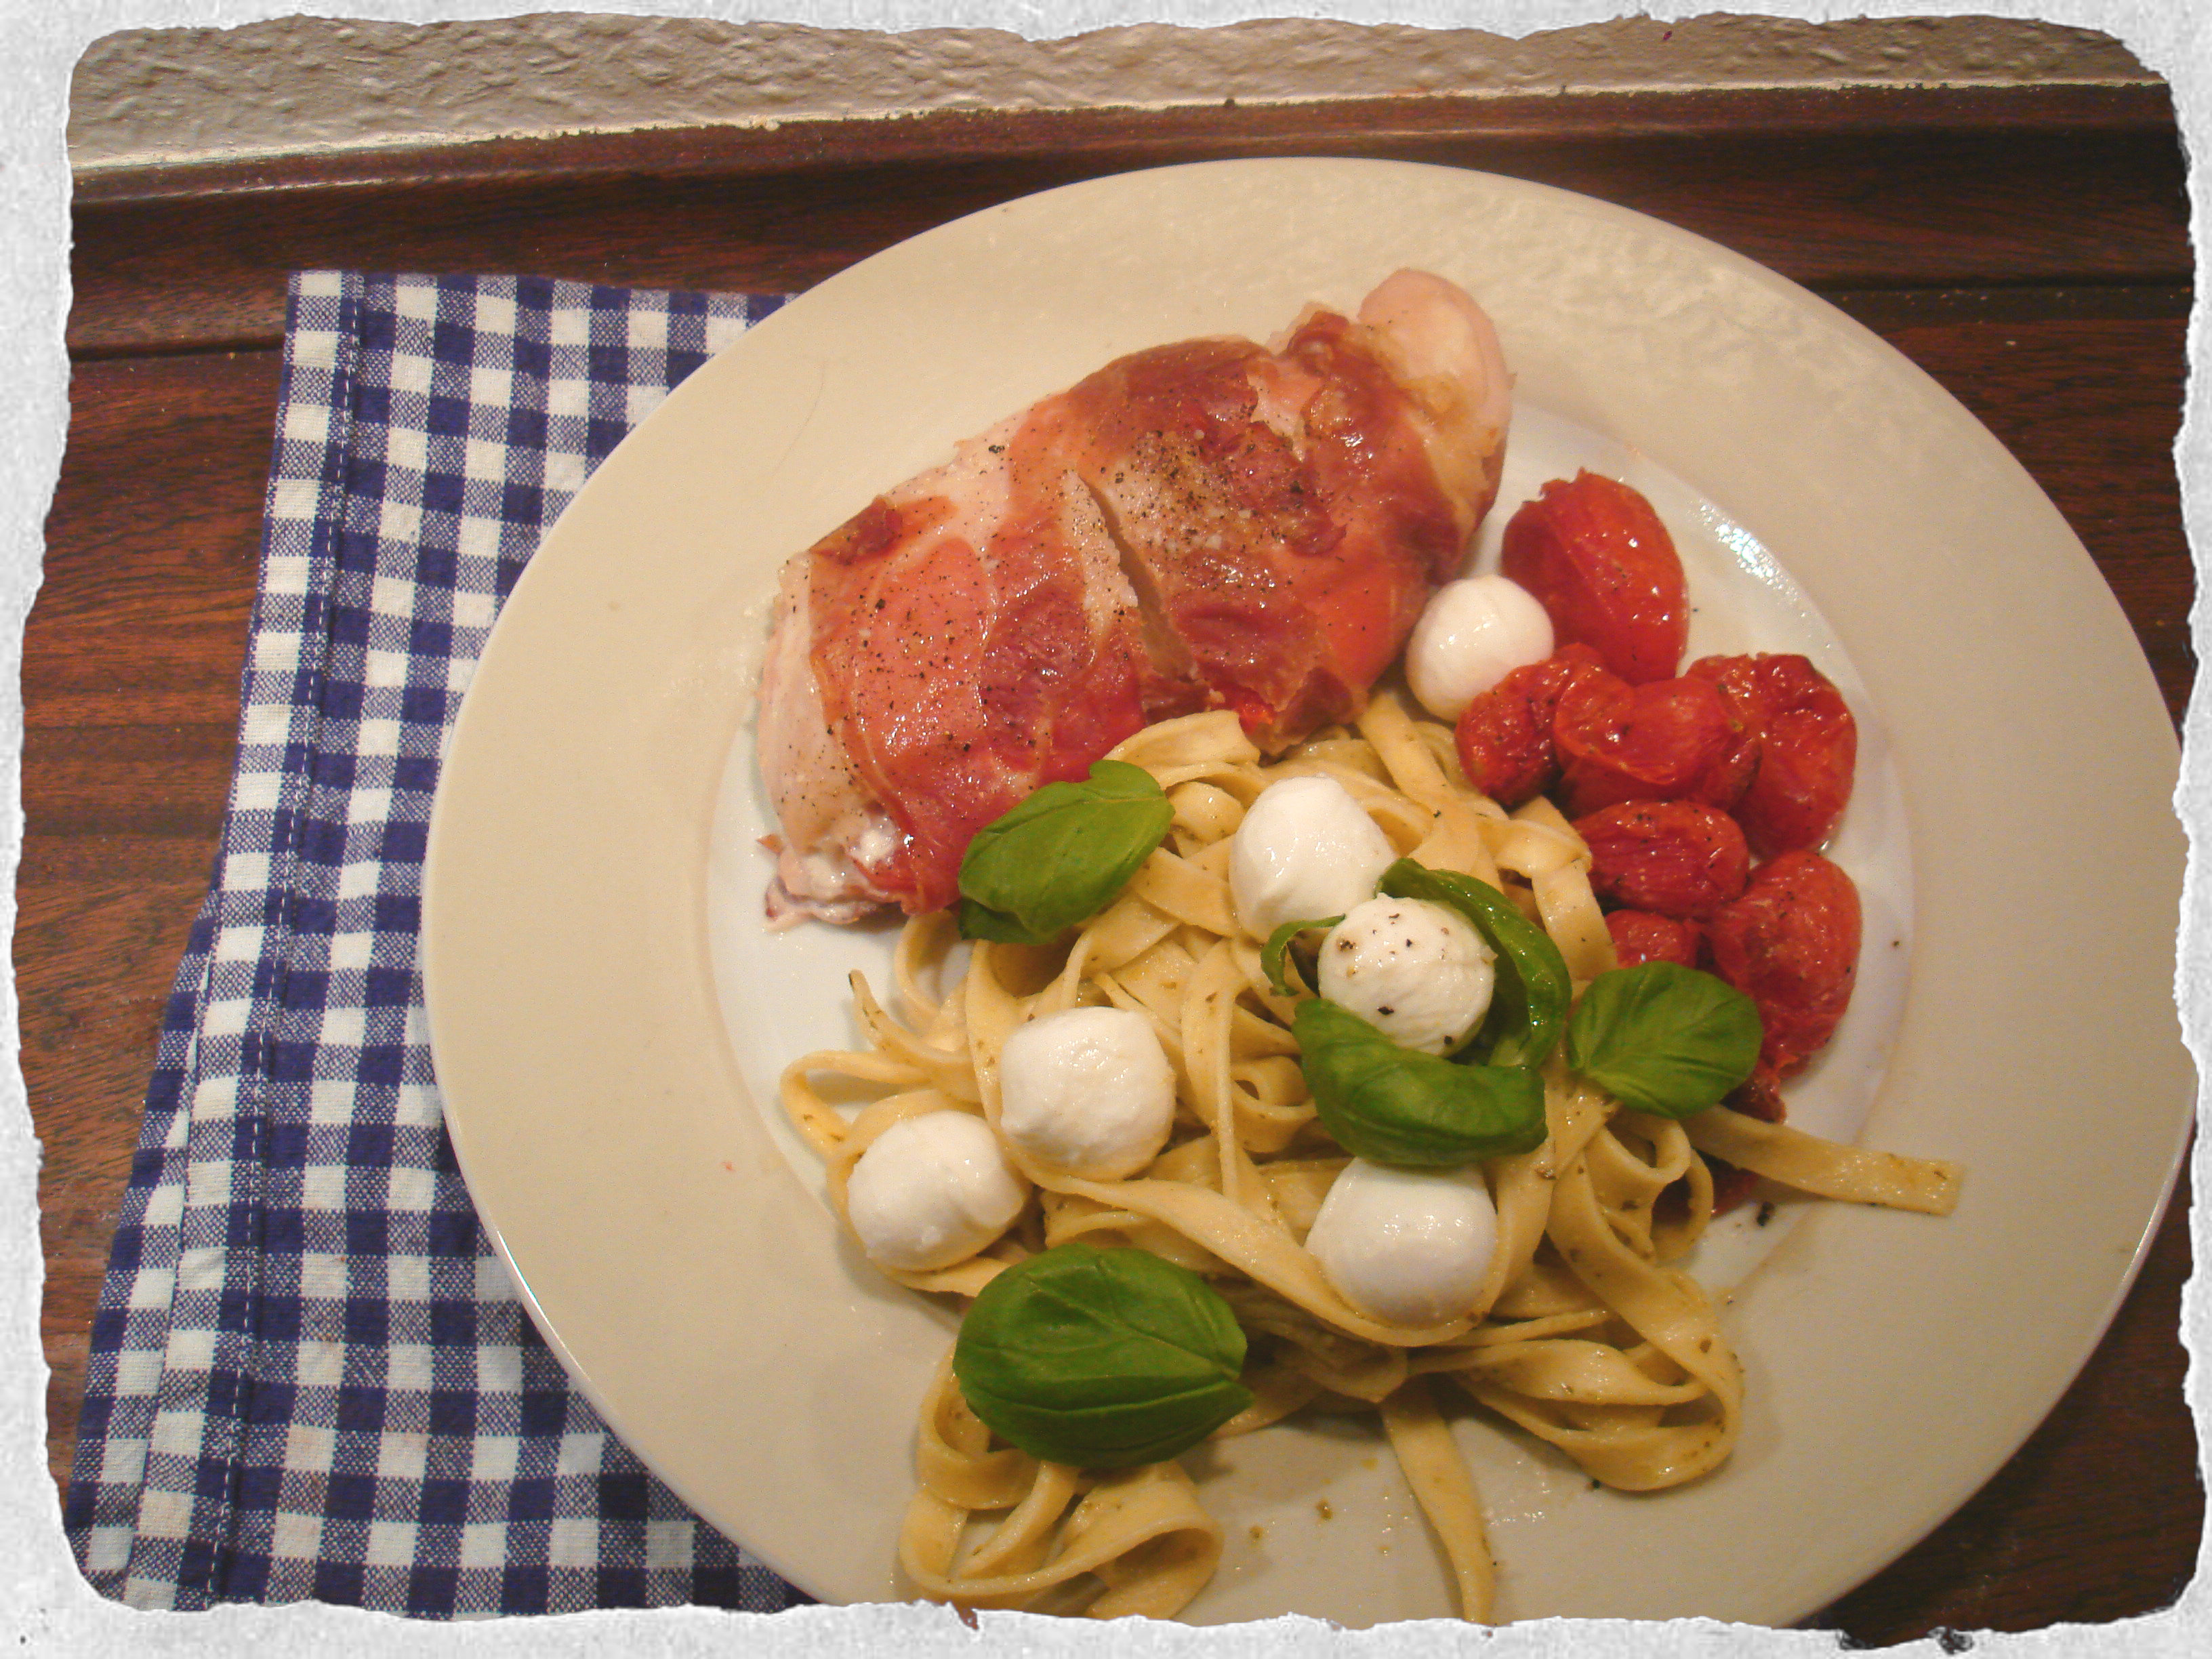 Stuffed chicken breast, pesto pasta and roasted tomatoes